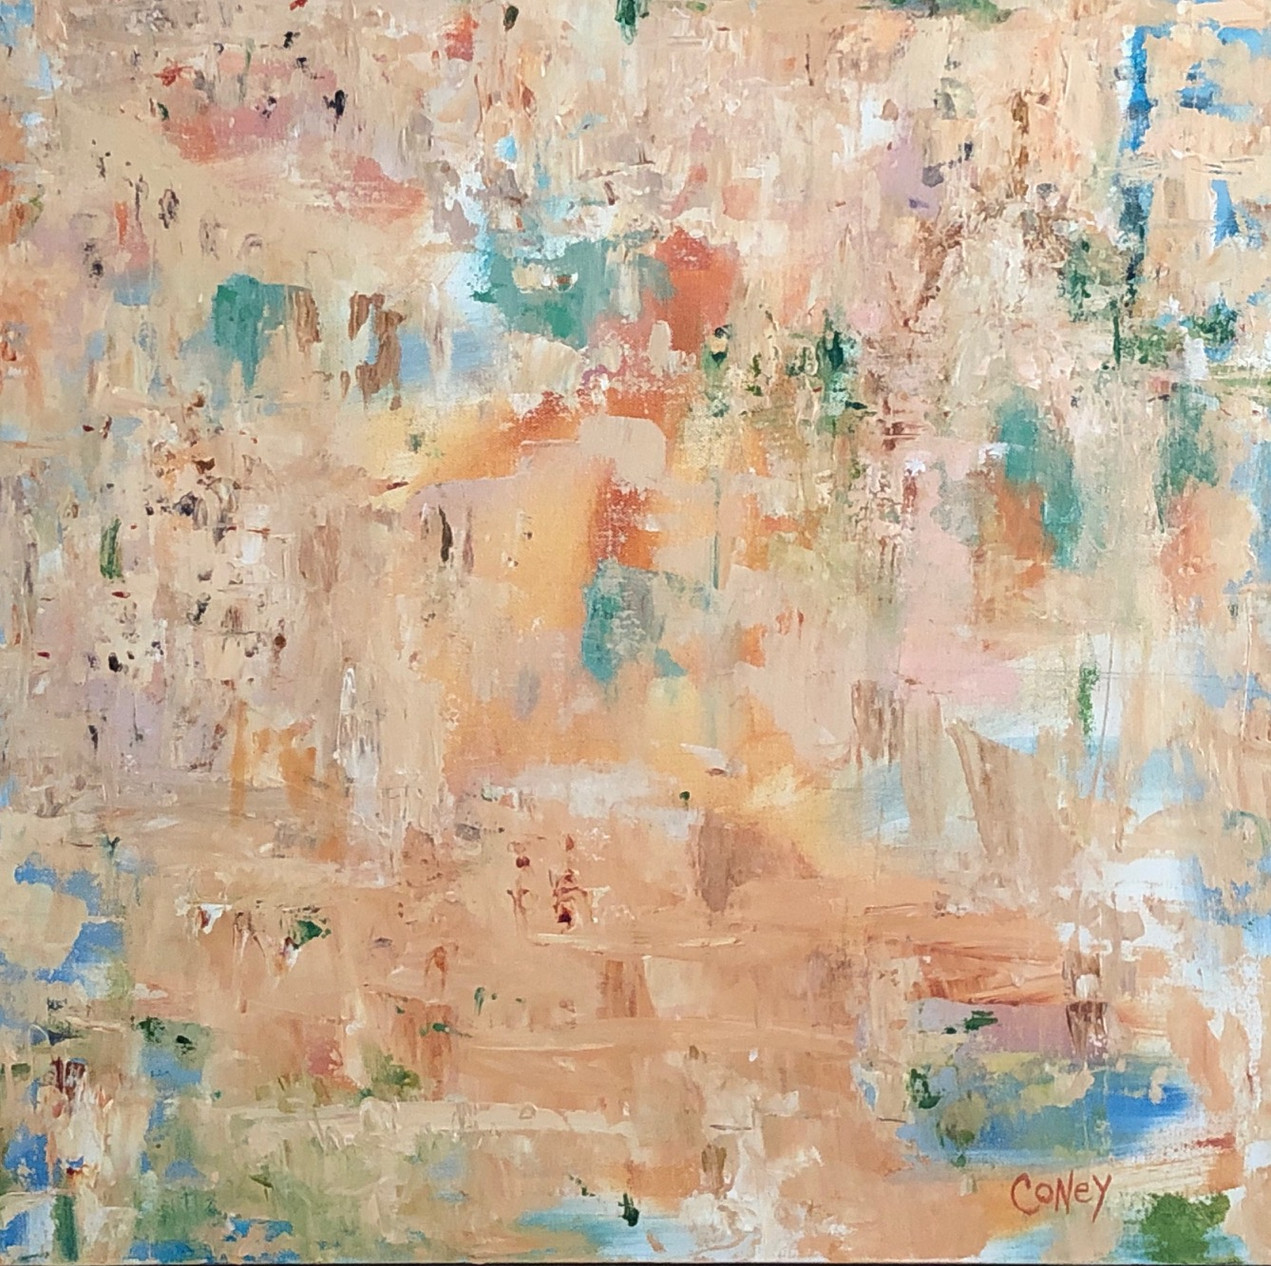 Jerusalem (acrylic on canvas) CindyConeyArt